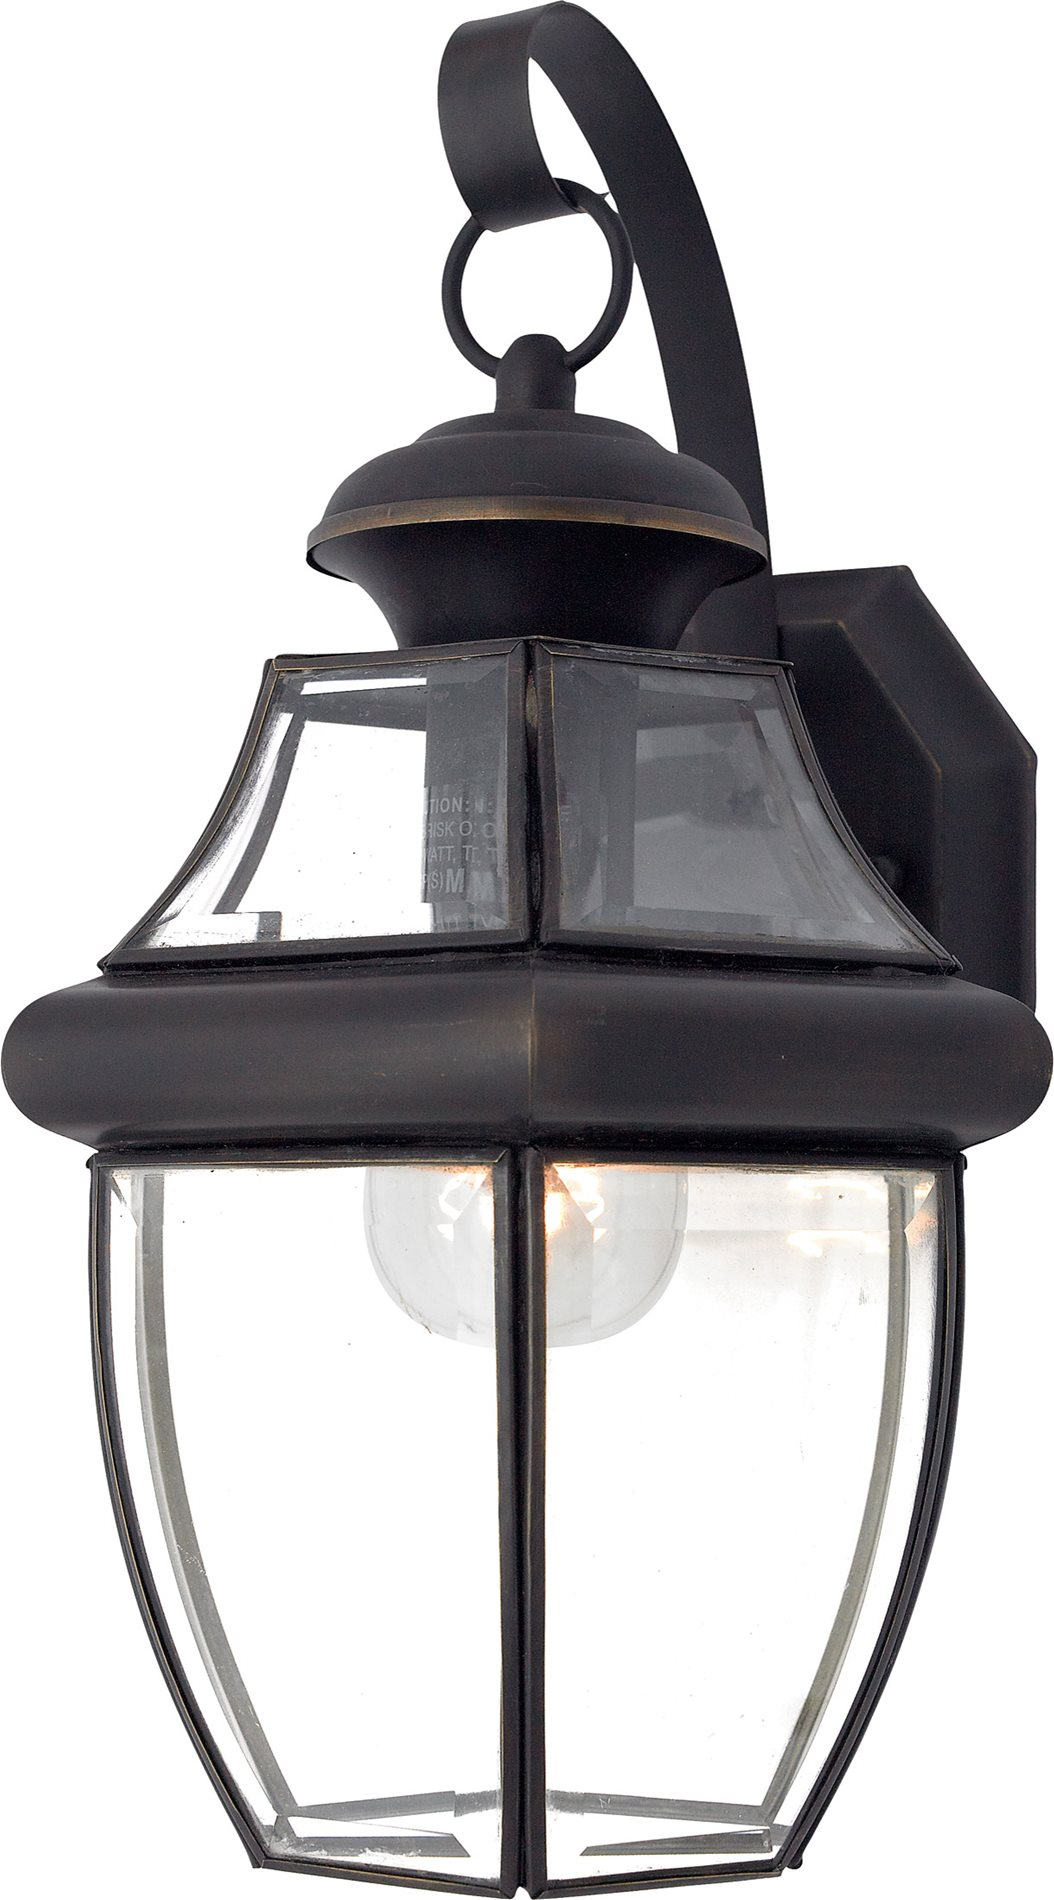 Quoizel ny8316z newbury traditional outdoor wall sconce qz - Exterior landscape lighting fixtures ...